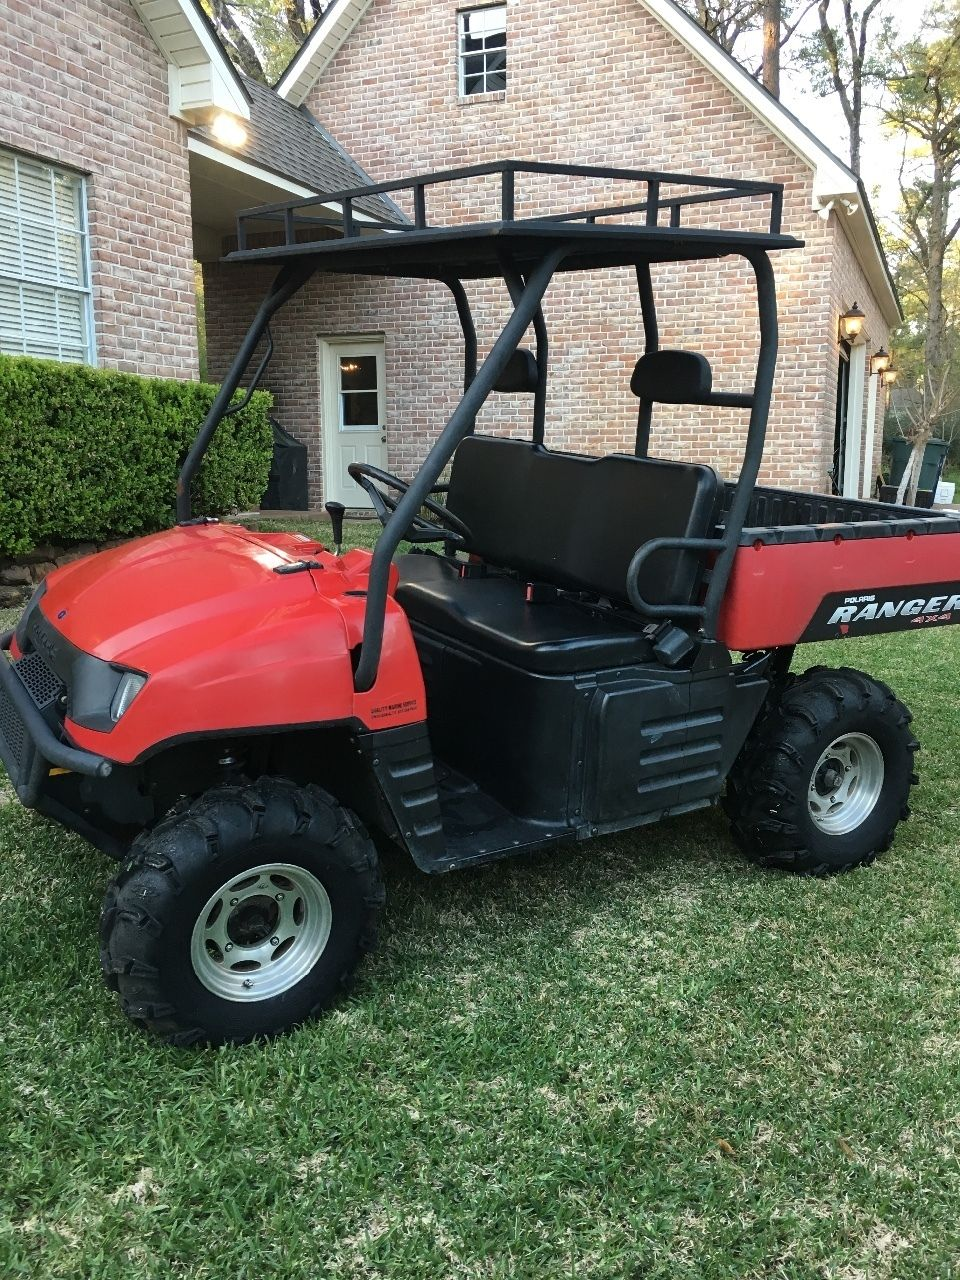 Used 2005 Polaris Ranger Atvs For Sale In Texas 2005 Polaris Ranger 4x4 With 290 Hours One Owner And Garage Kept The Ranger Polaris Ranger Ranger Ranger 4x4